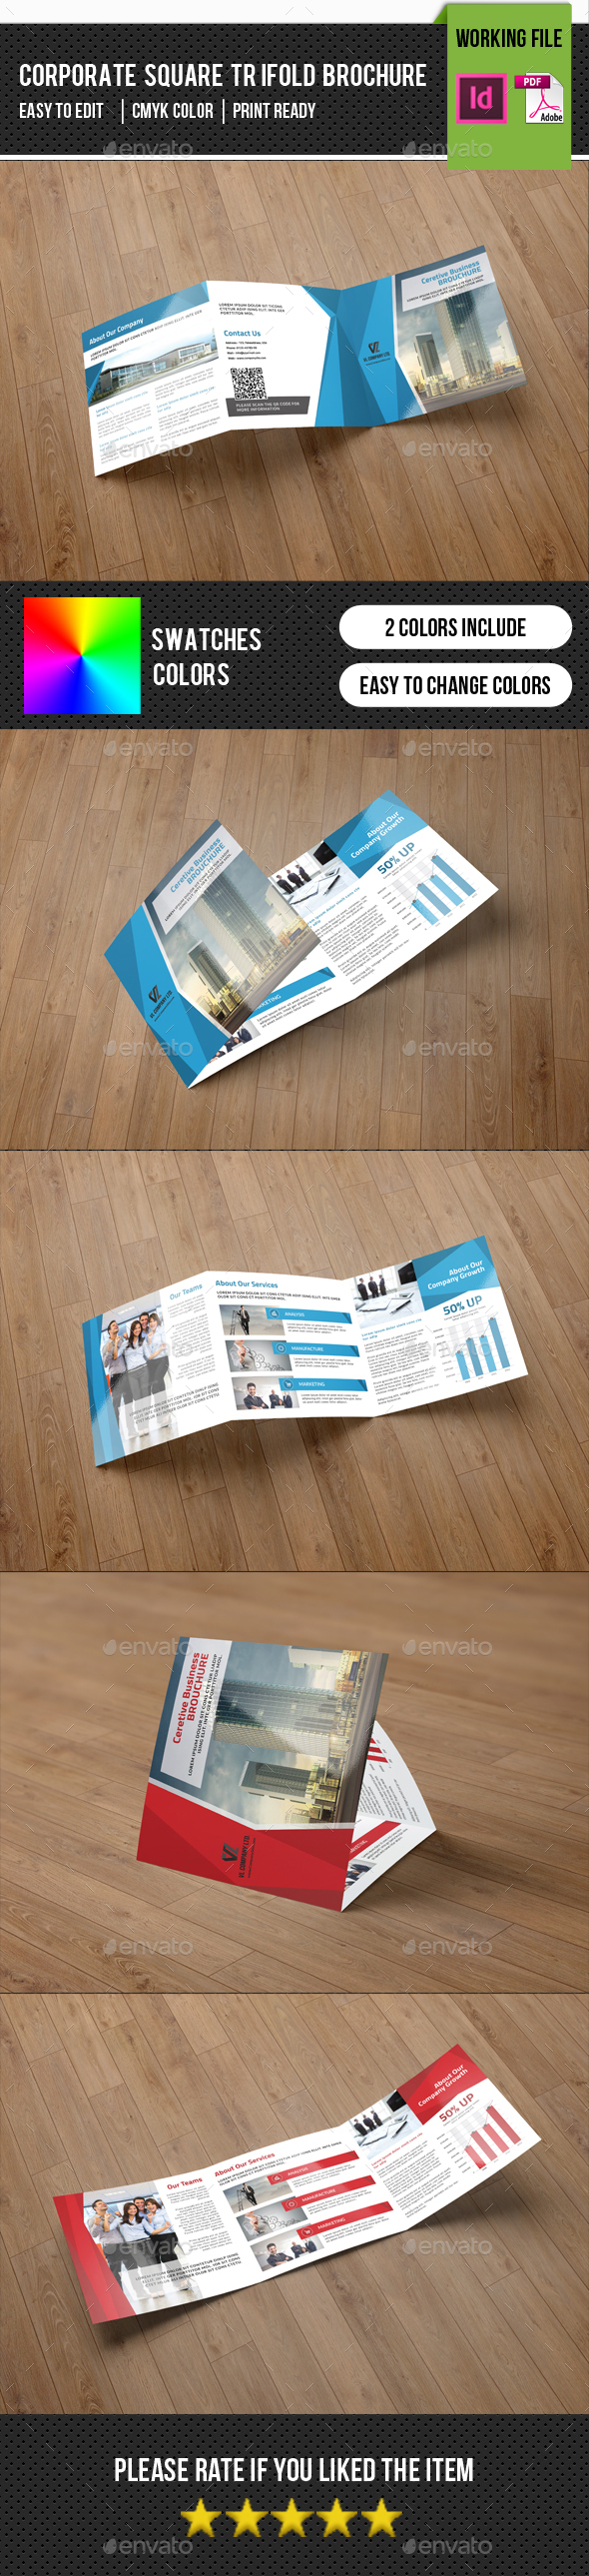 Square Trifold Corporate Brochure-v77 - Corporate Brochures